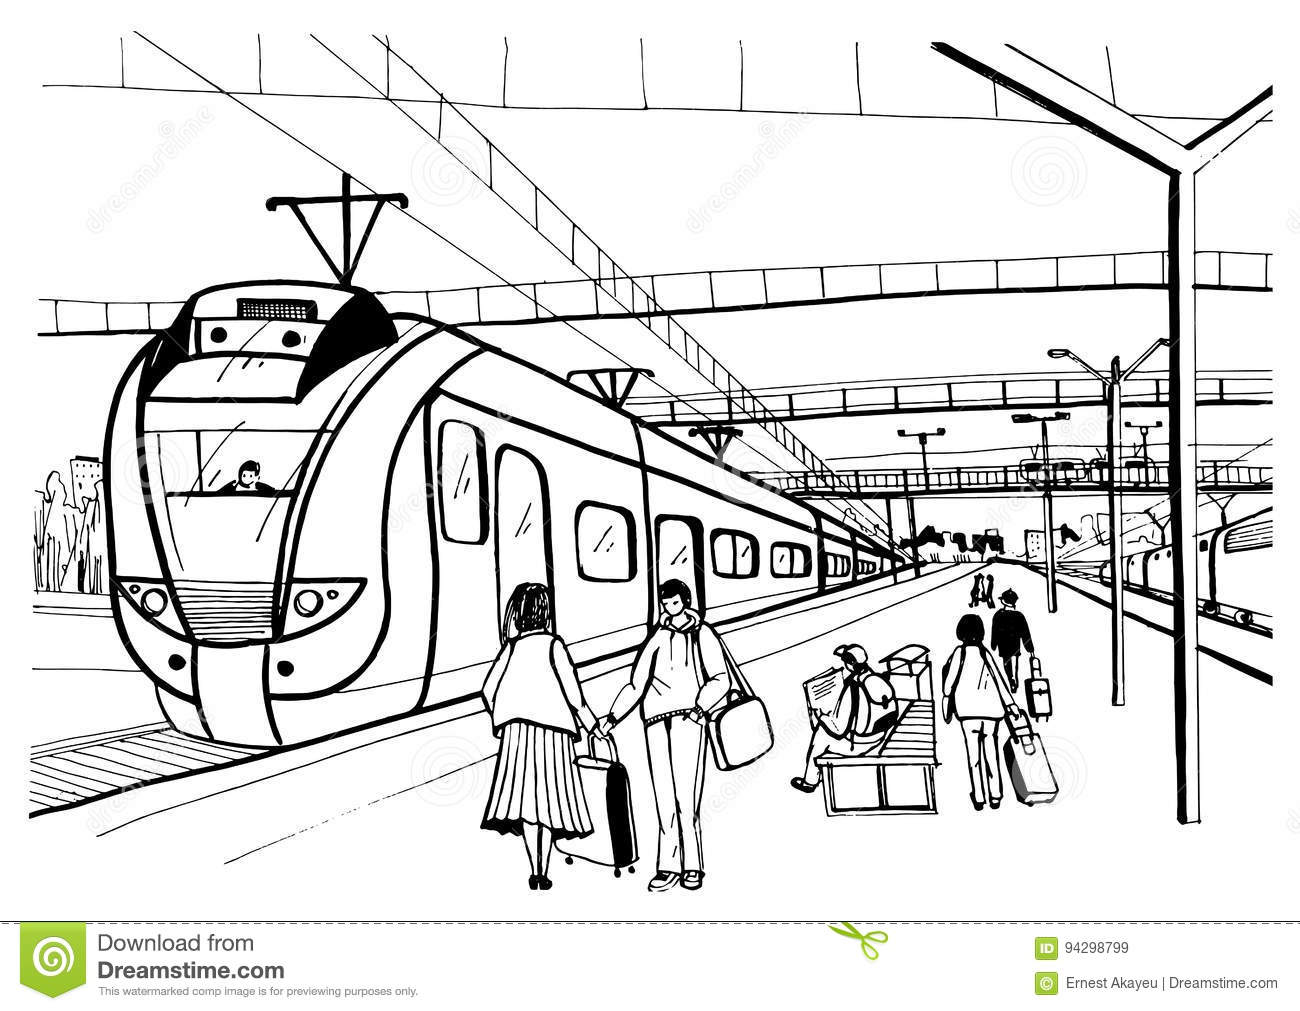 Monochrome Horizontal Sketch With People Passengers